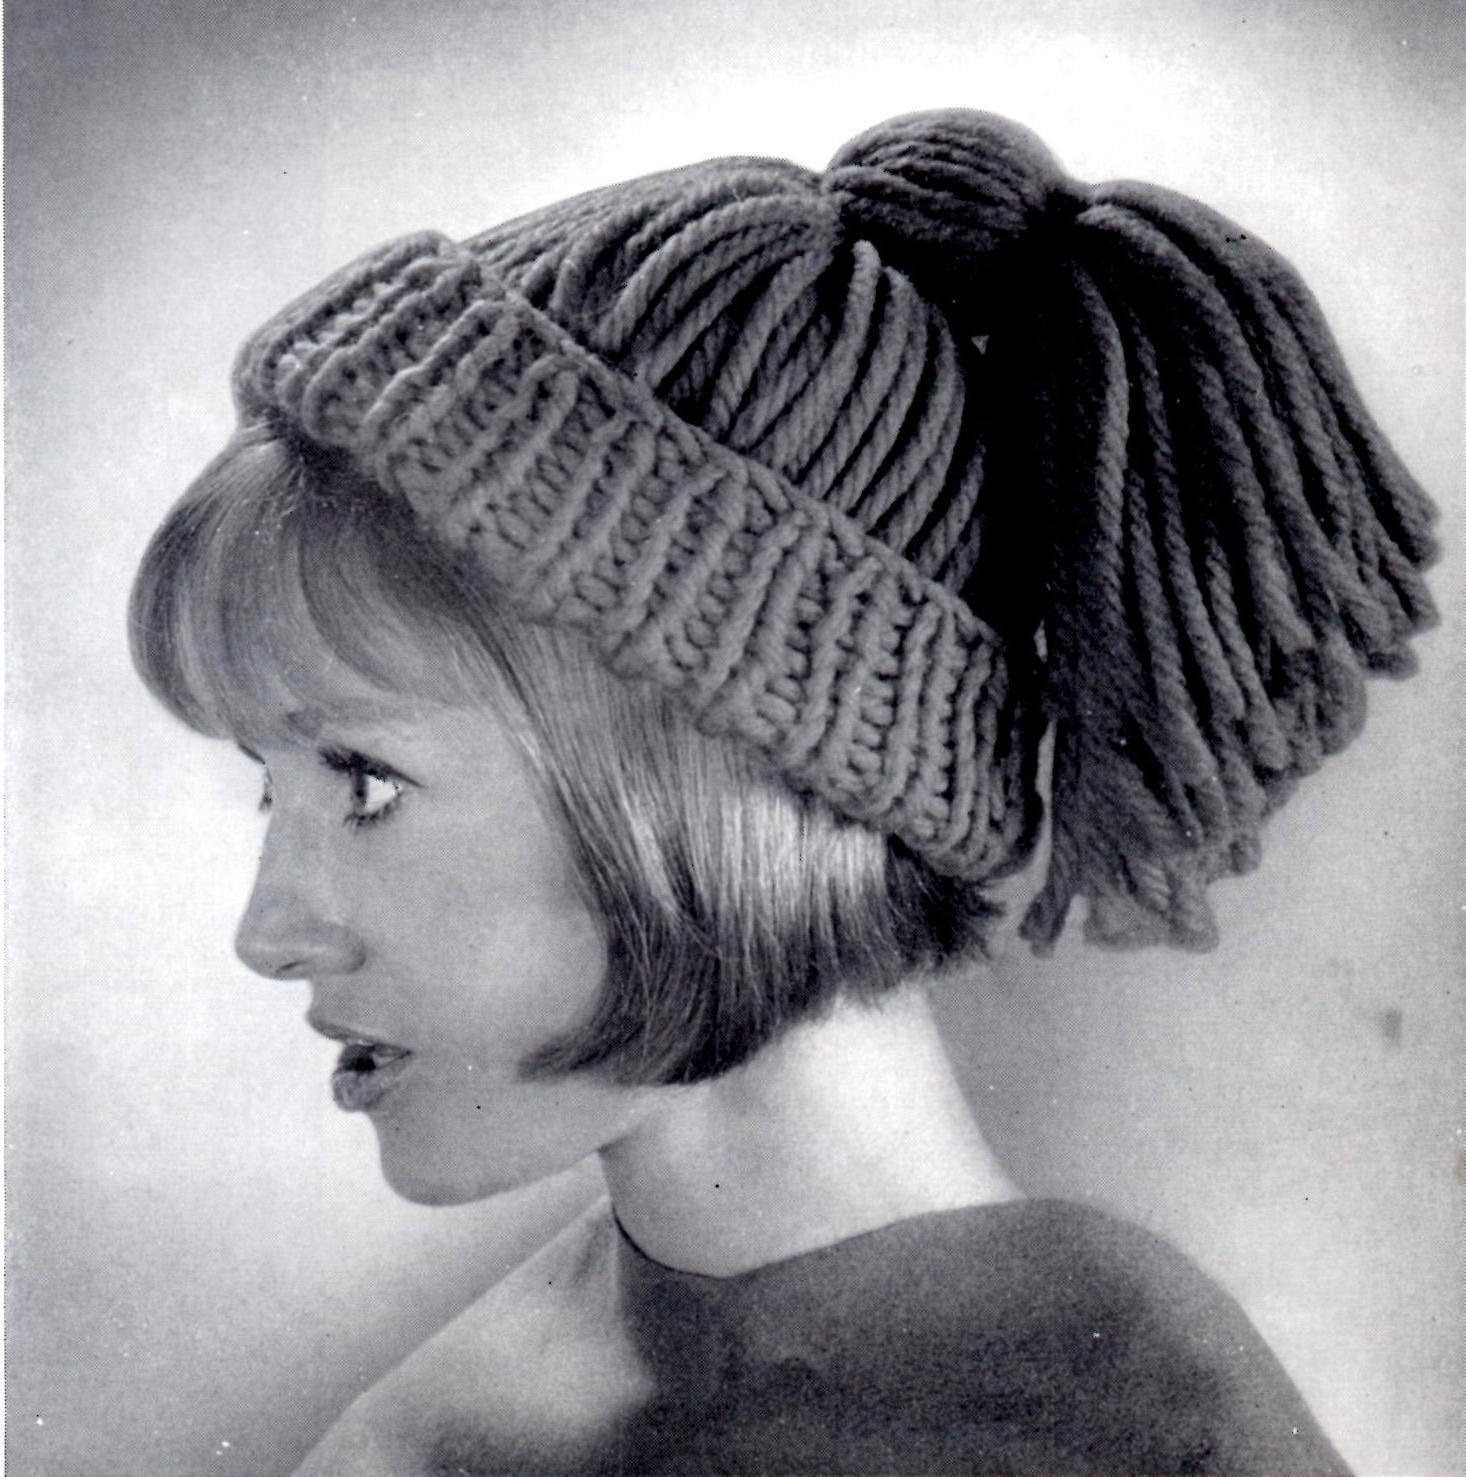 Knitting Pattern Ponytail Hat : Items similar to Vintage Knitted Ponytail Hat Instant Download on Etsy